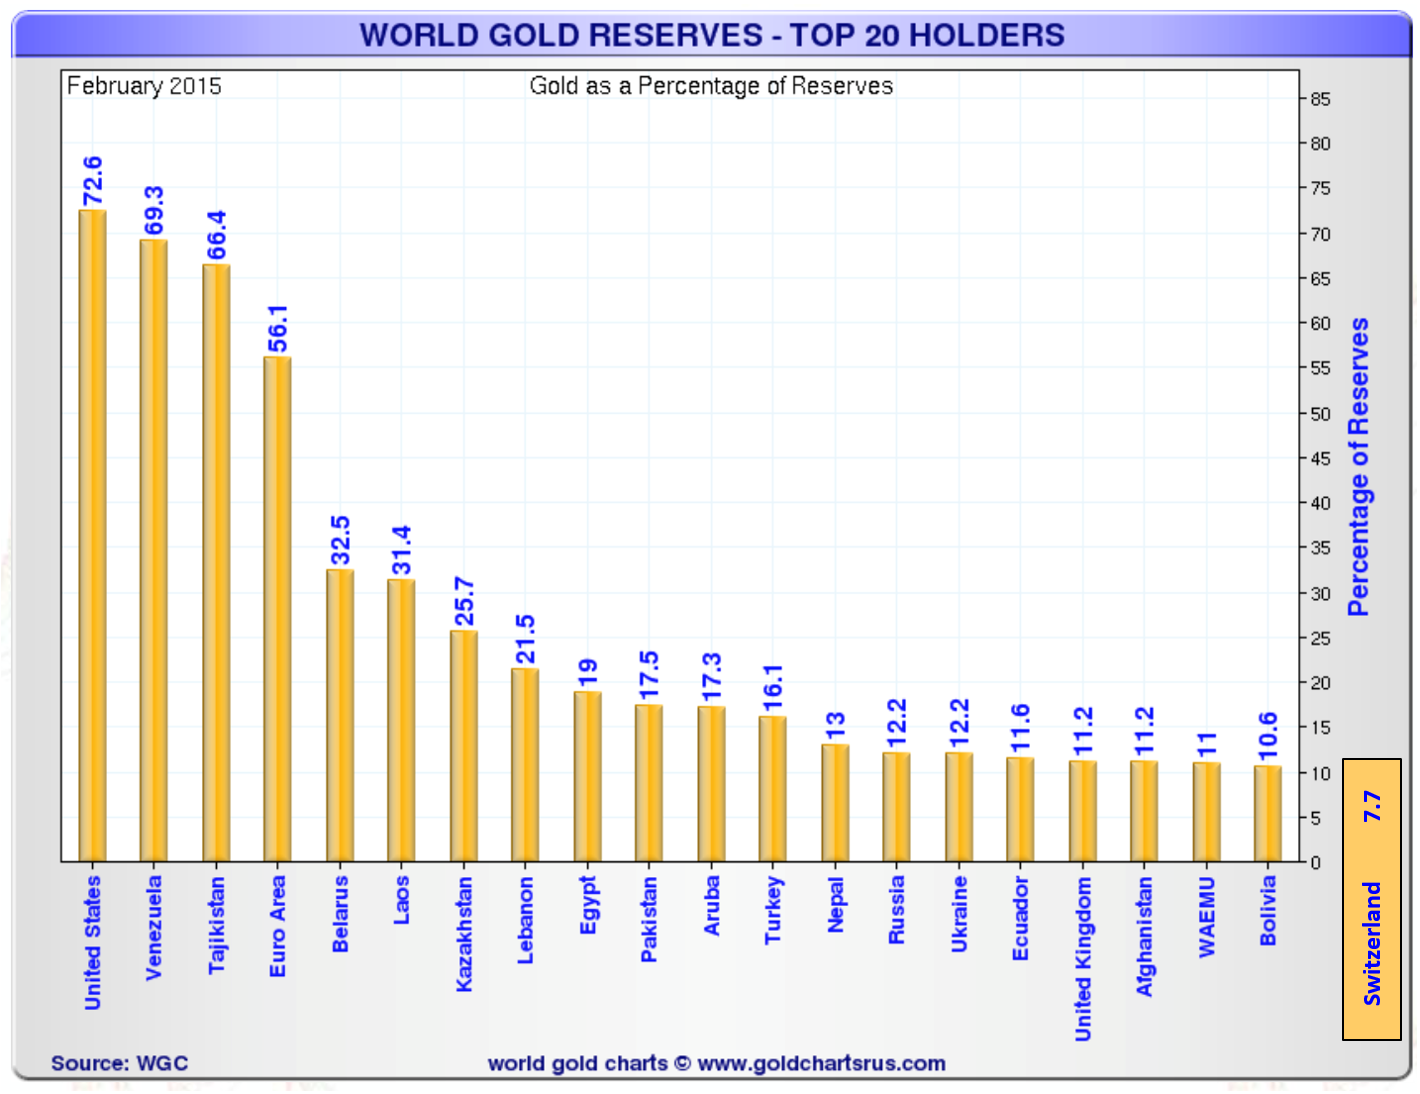 World Gold Reserves – Top 20 Holders (Percentage of Reserves)